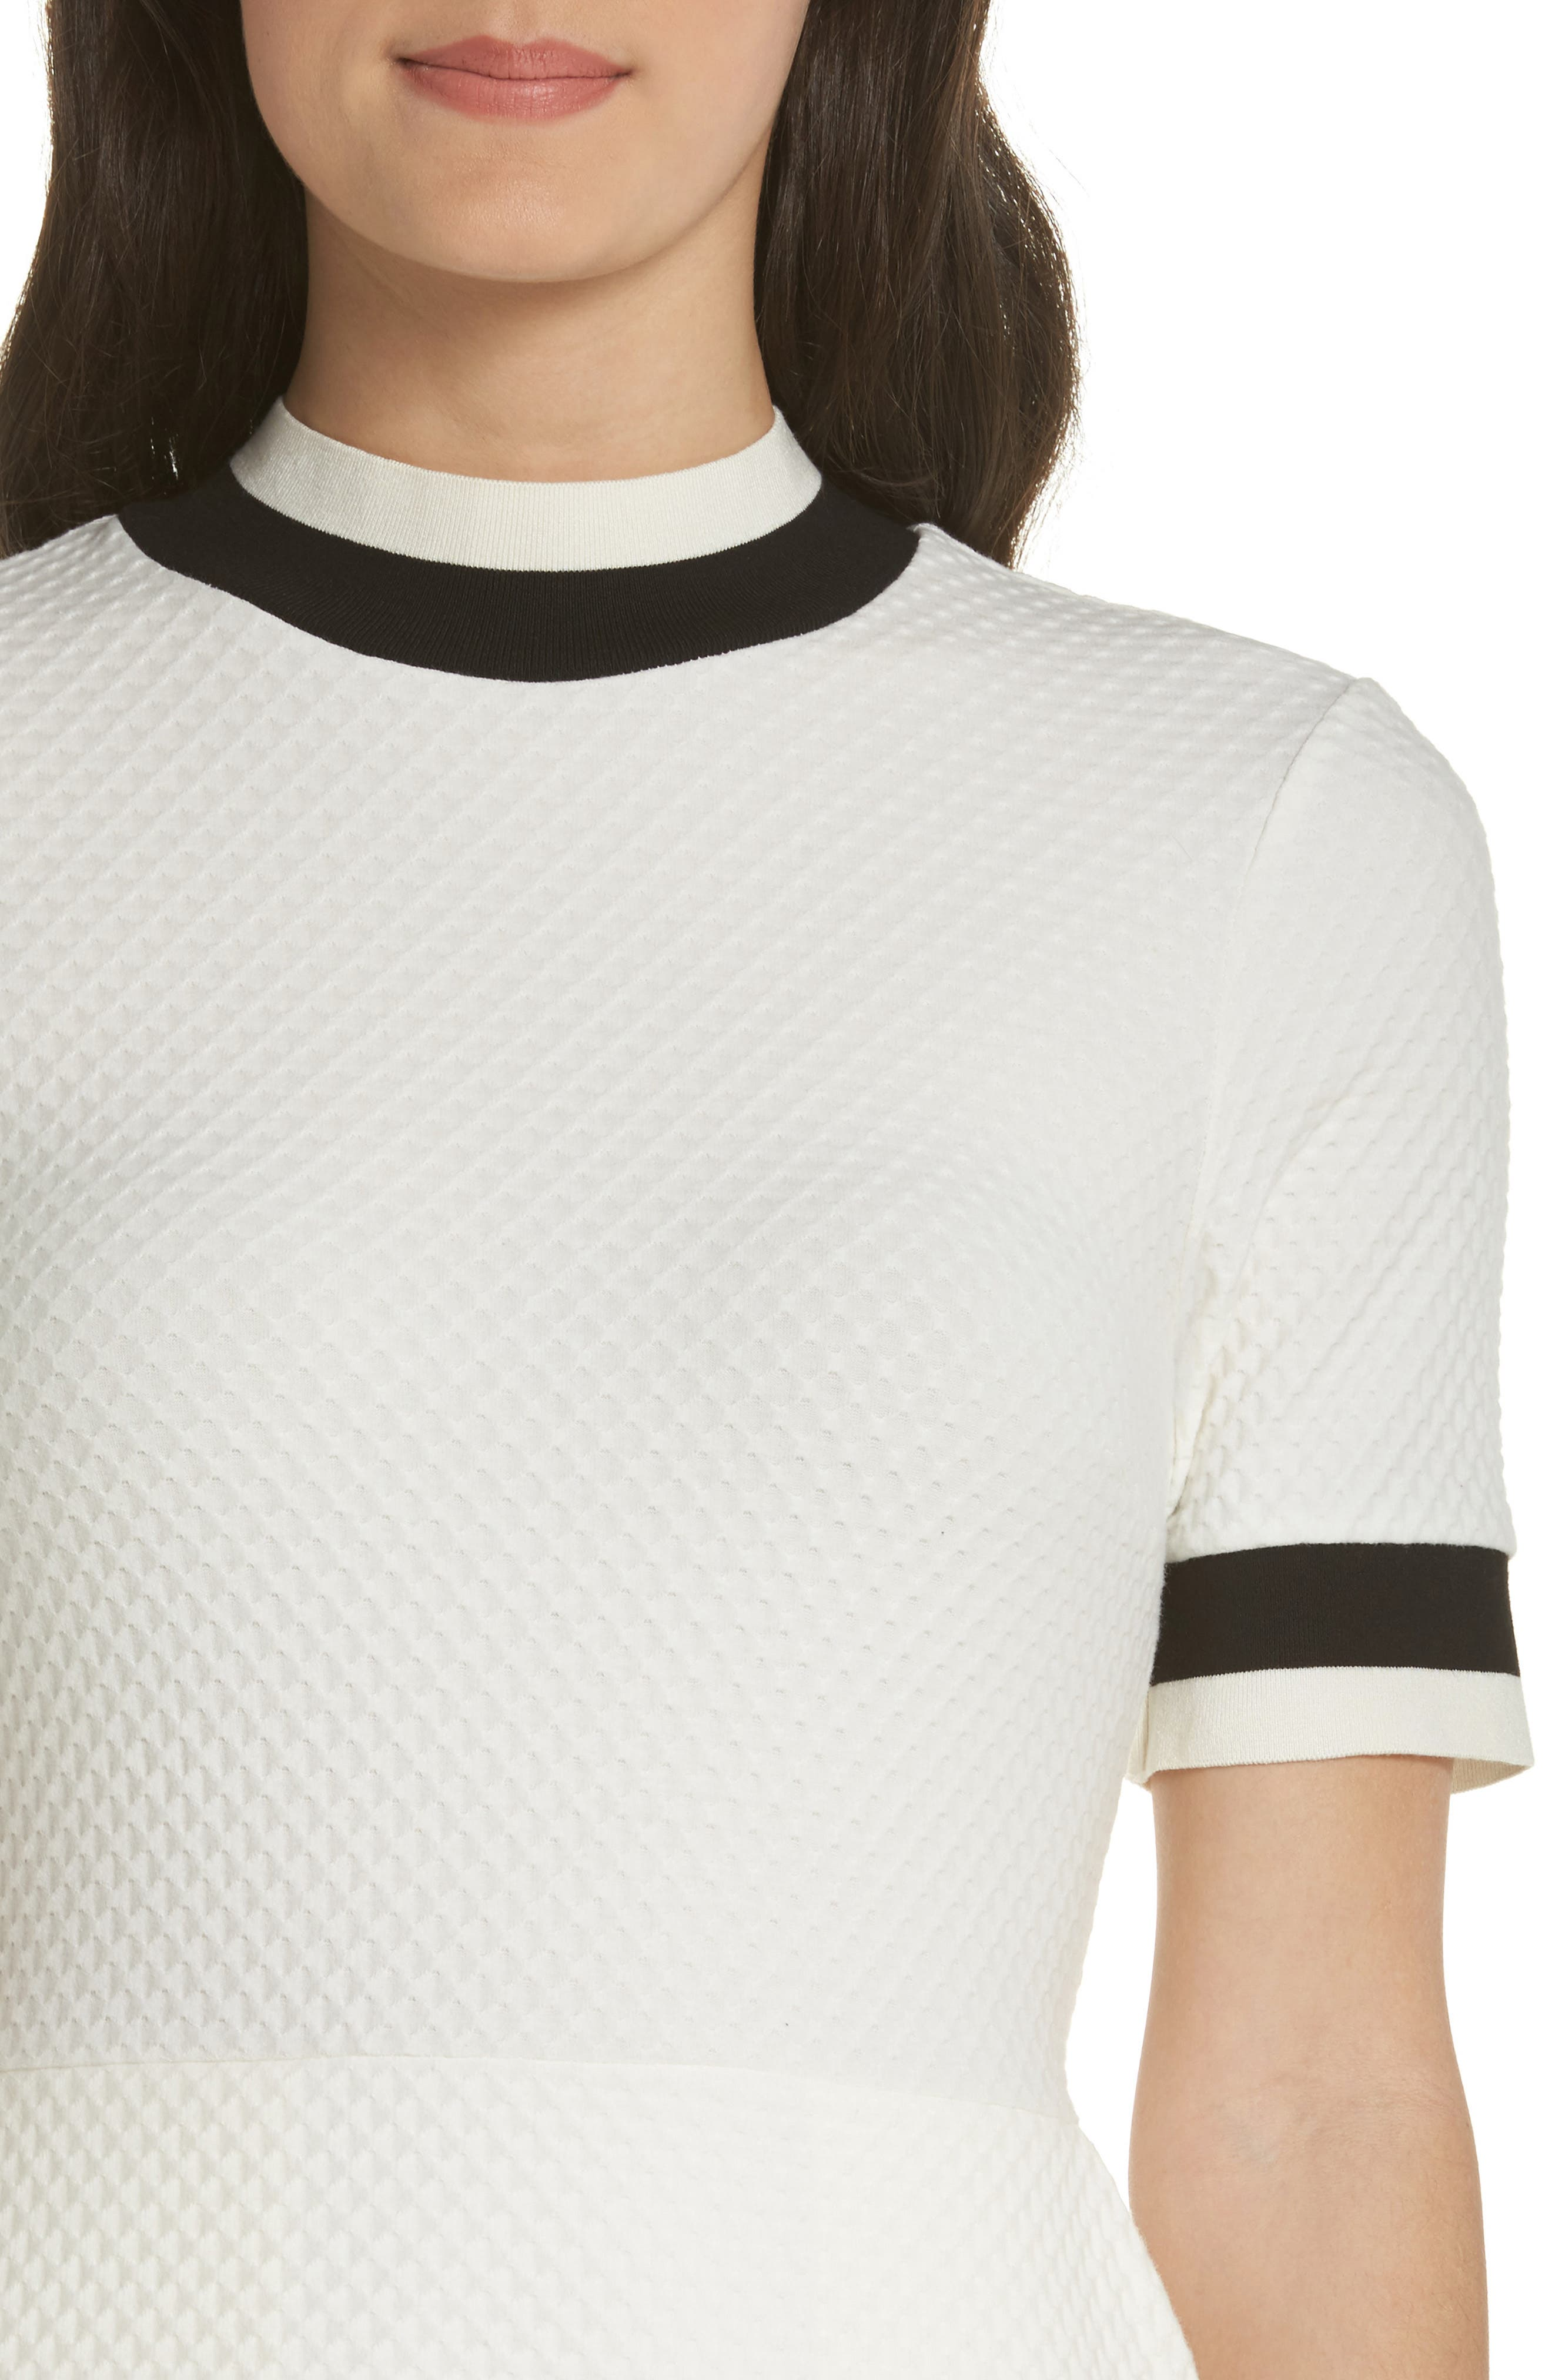 FRENCH CONNECTION, Savos Sudan Jersey Dress, Alternate thumbnail 5, color, BLACK/ SUMMER WHITE